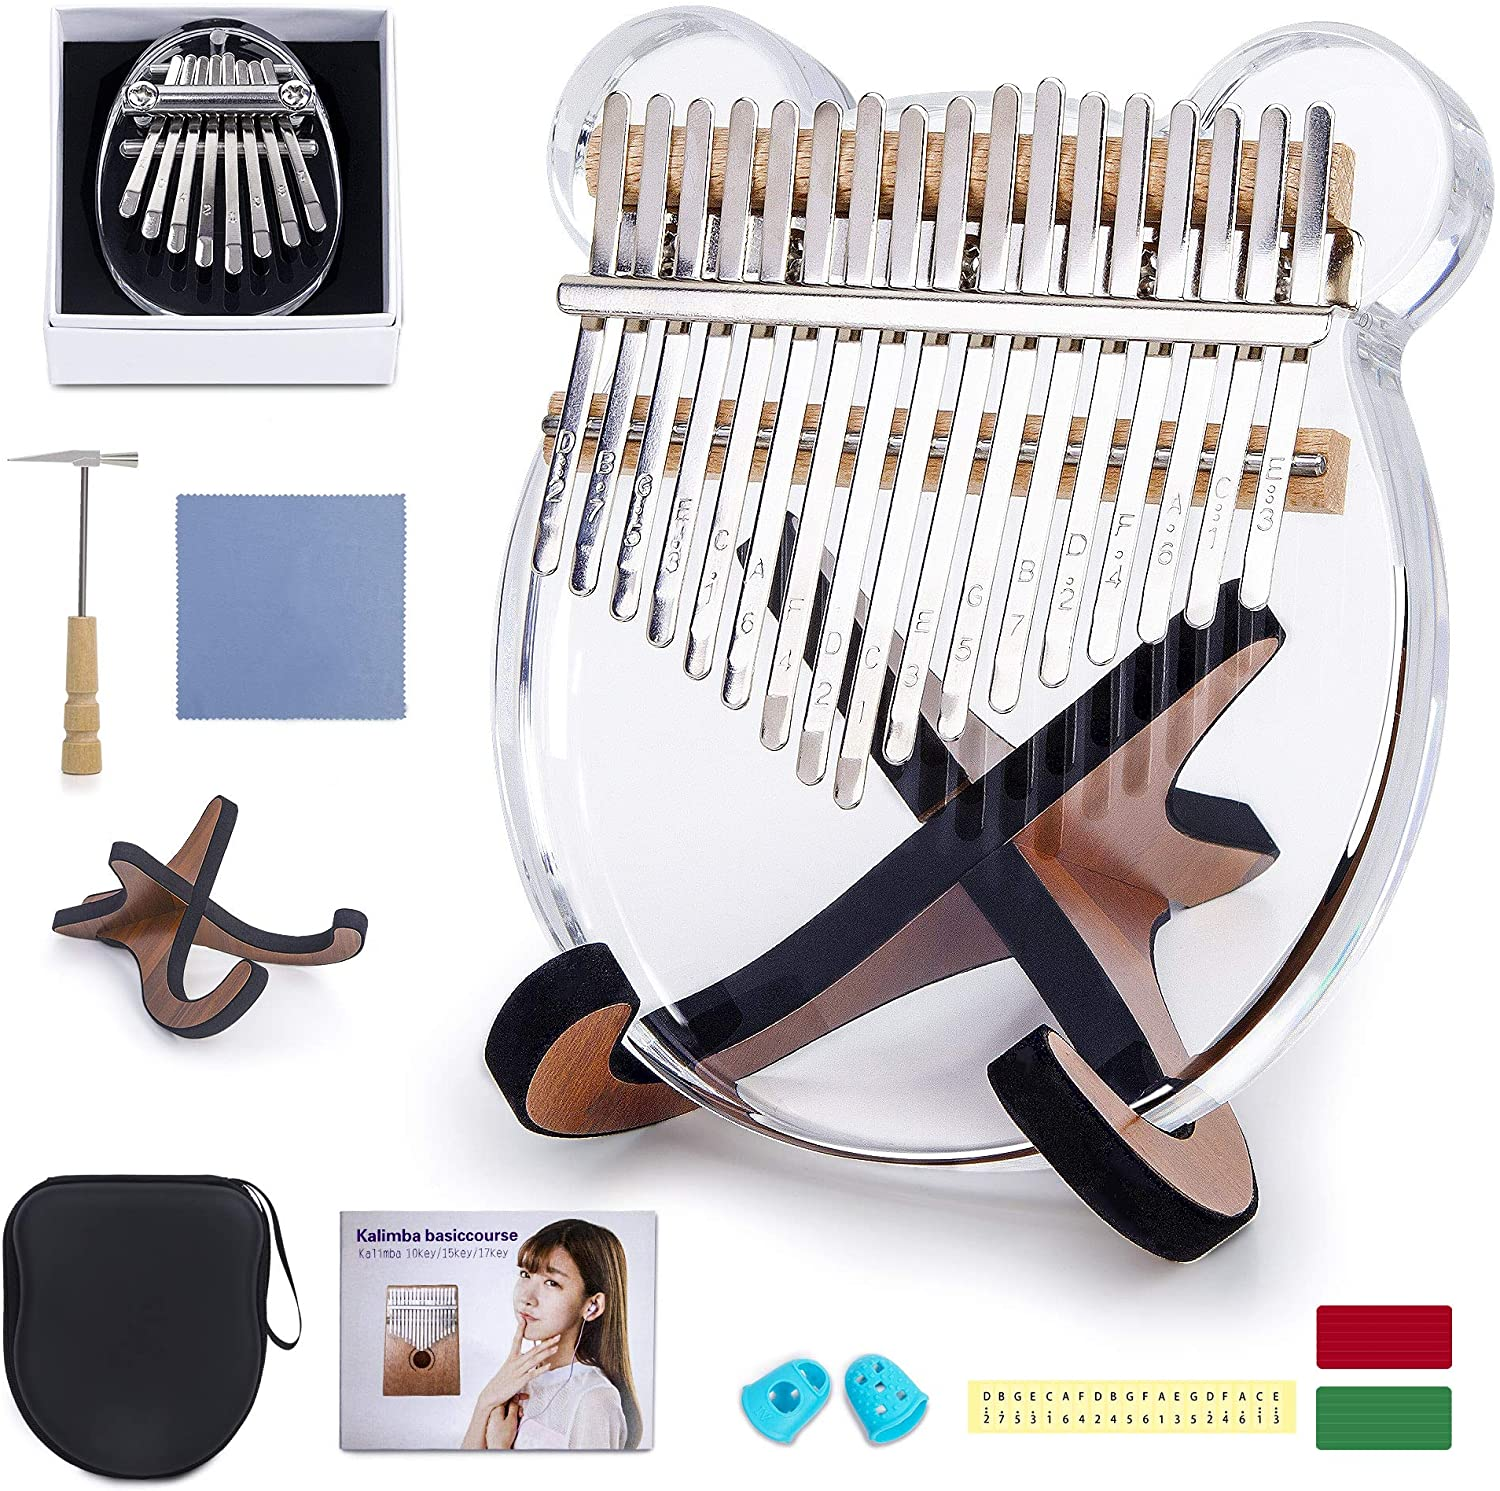 2 Pack Kalimba Thumb Piano, Parent-Child Outfit Easy to Learn Mbira Acrylic Finger Piano, with Portable EVA Hard Protective Case, Study Instruction, and Tune Hammer for Kids Adult Beginners(White)